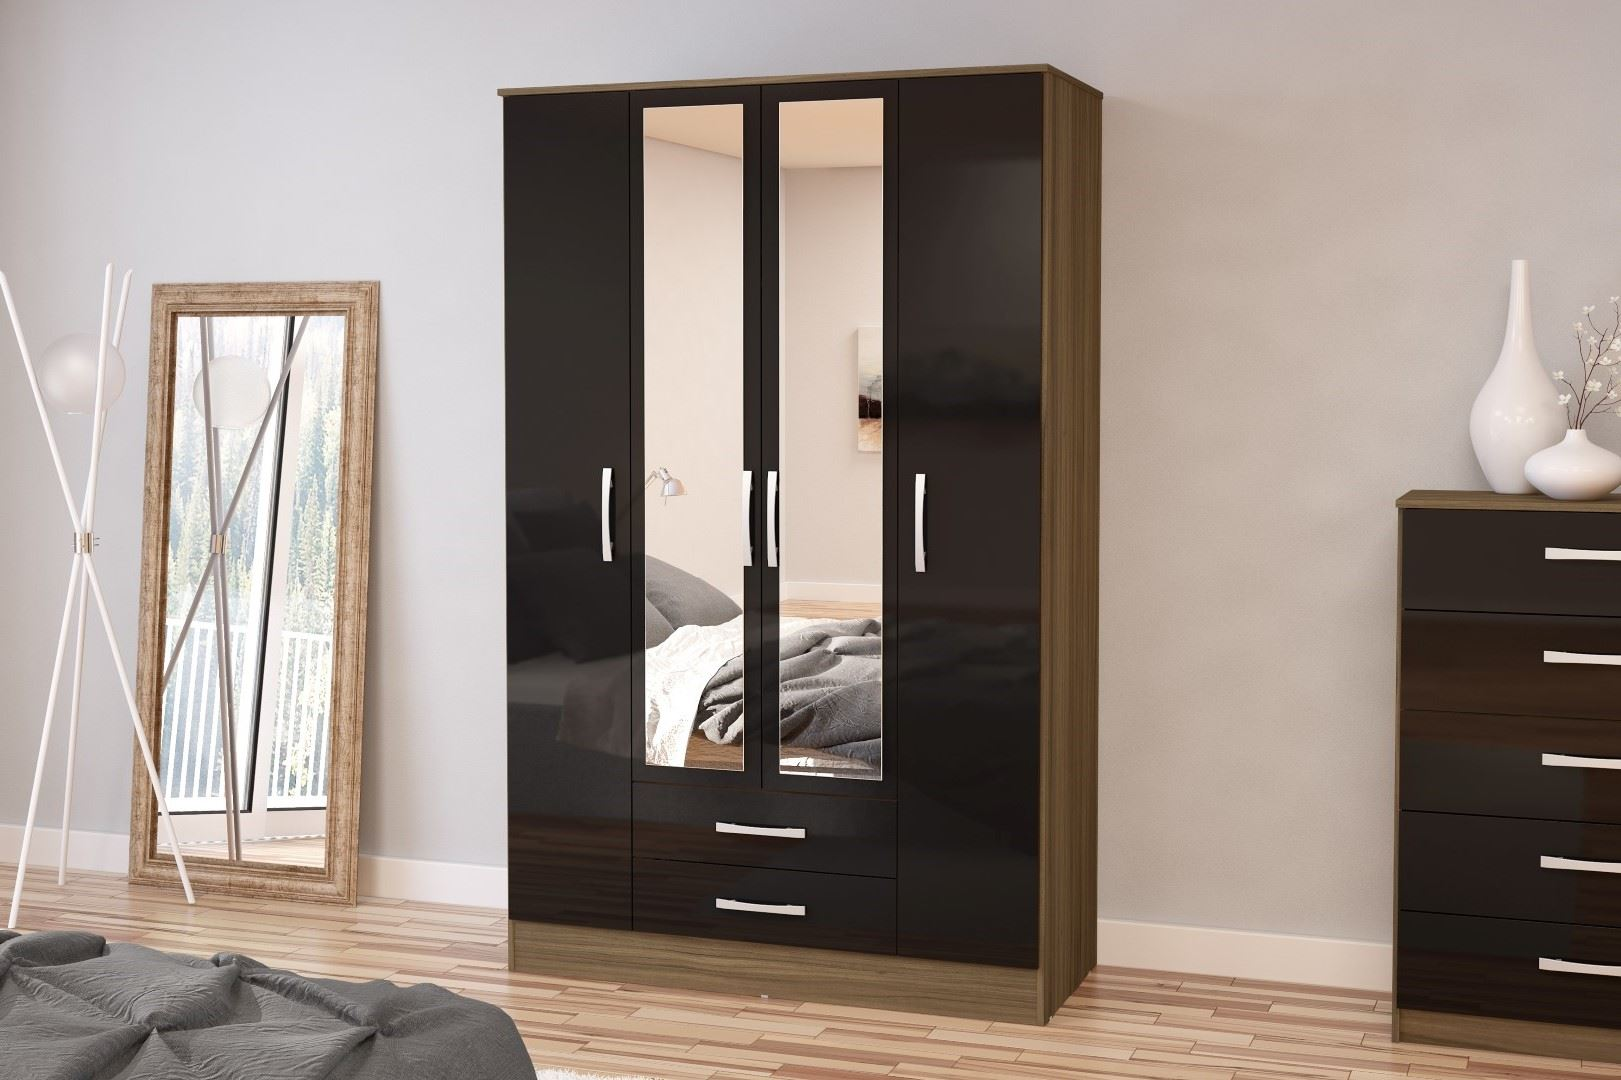 Lynx High Gloss Black and Walnut 4 door 2 drawer bedroom wardrobe new